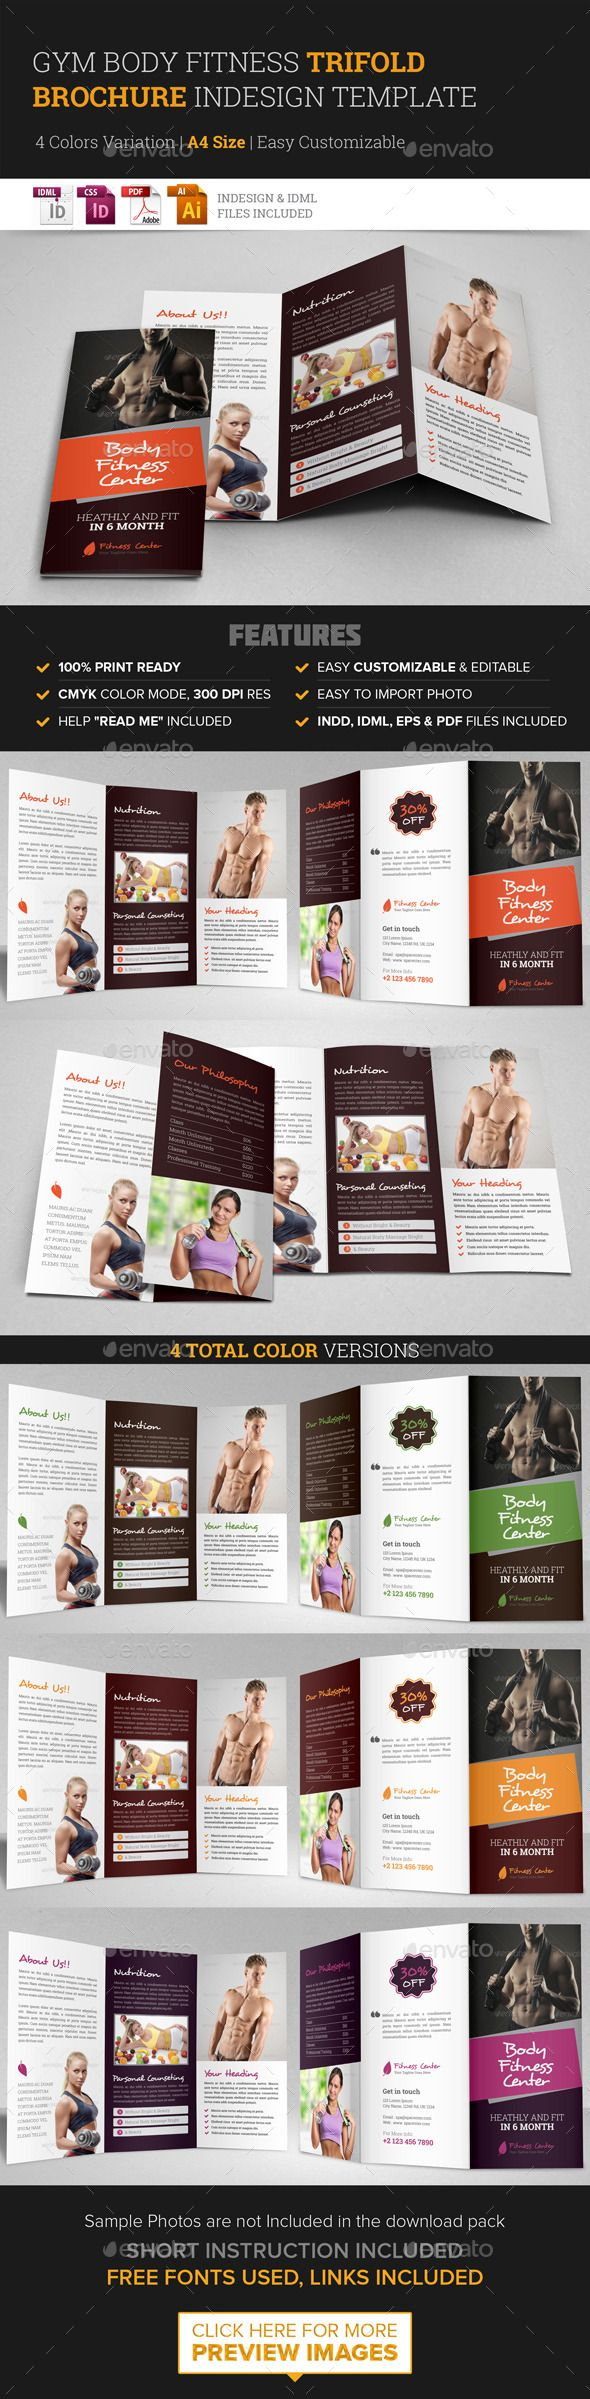 Gym Fitness Trifold Brochure Indesign Template – Fitness Brochure Template